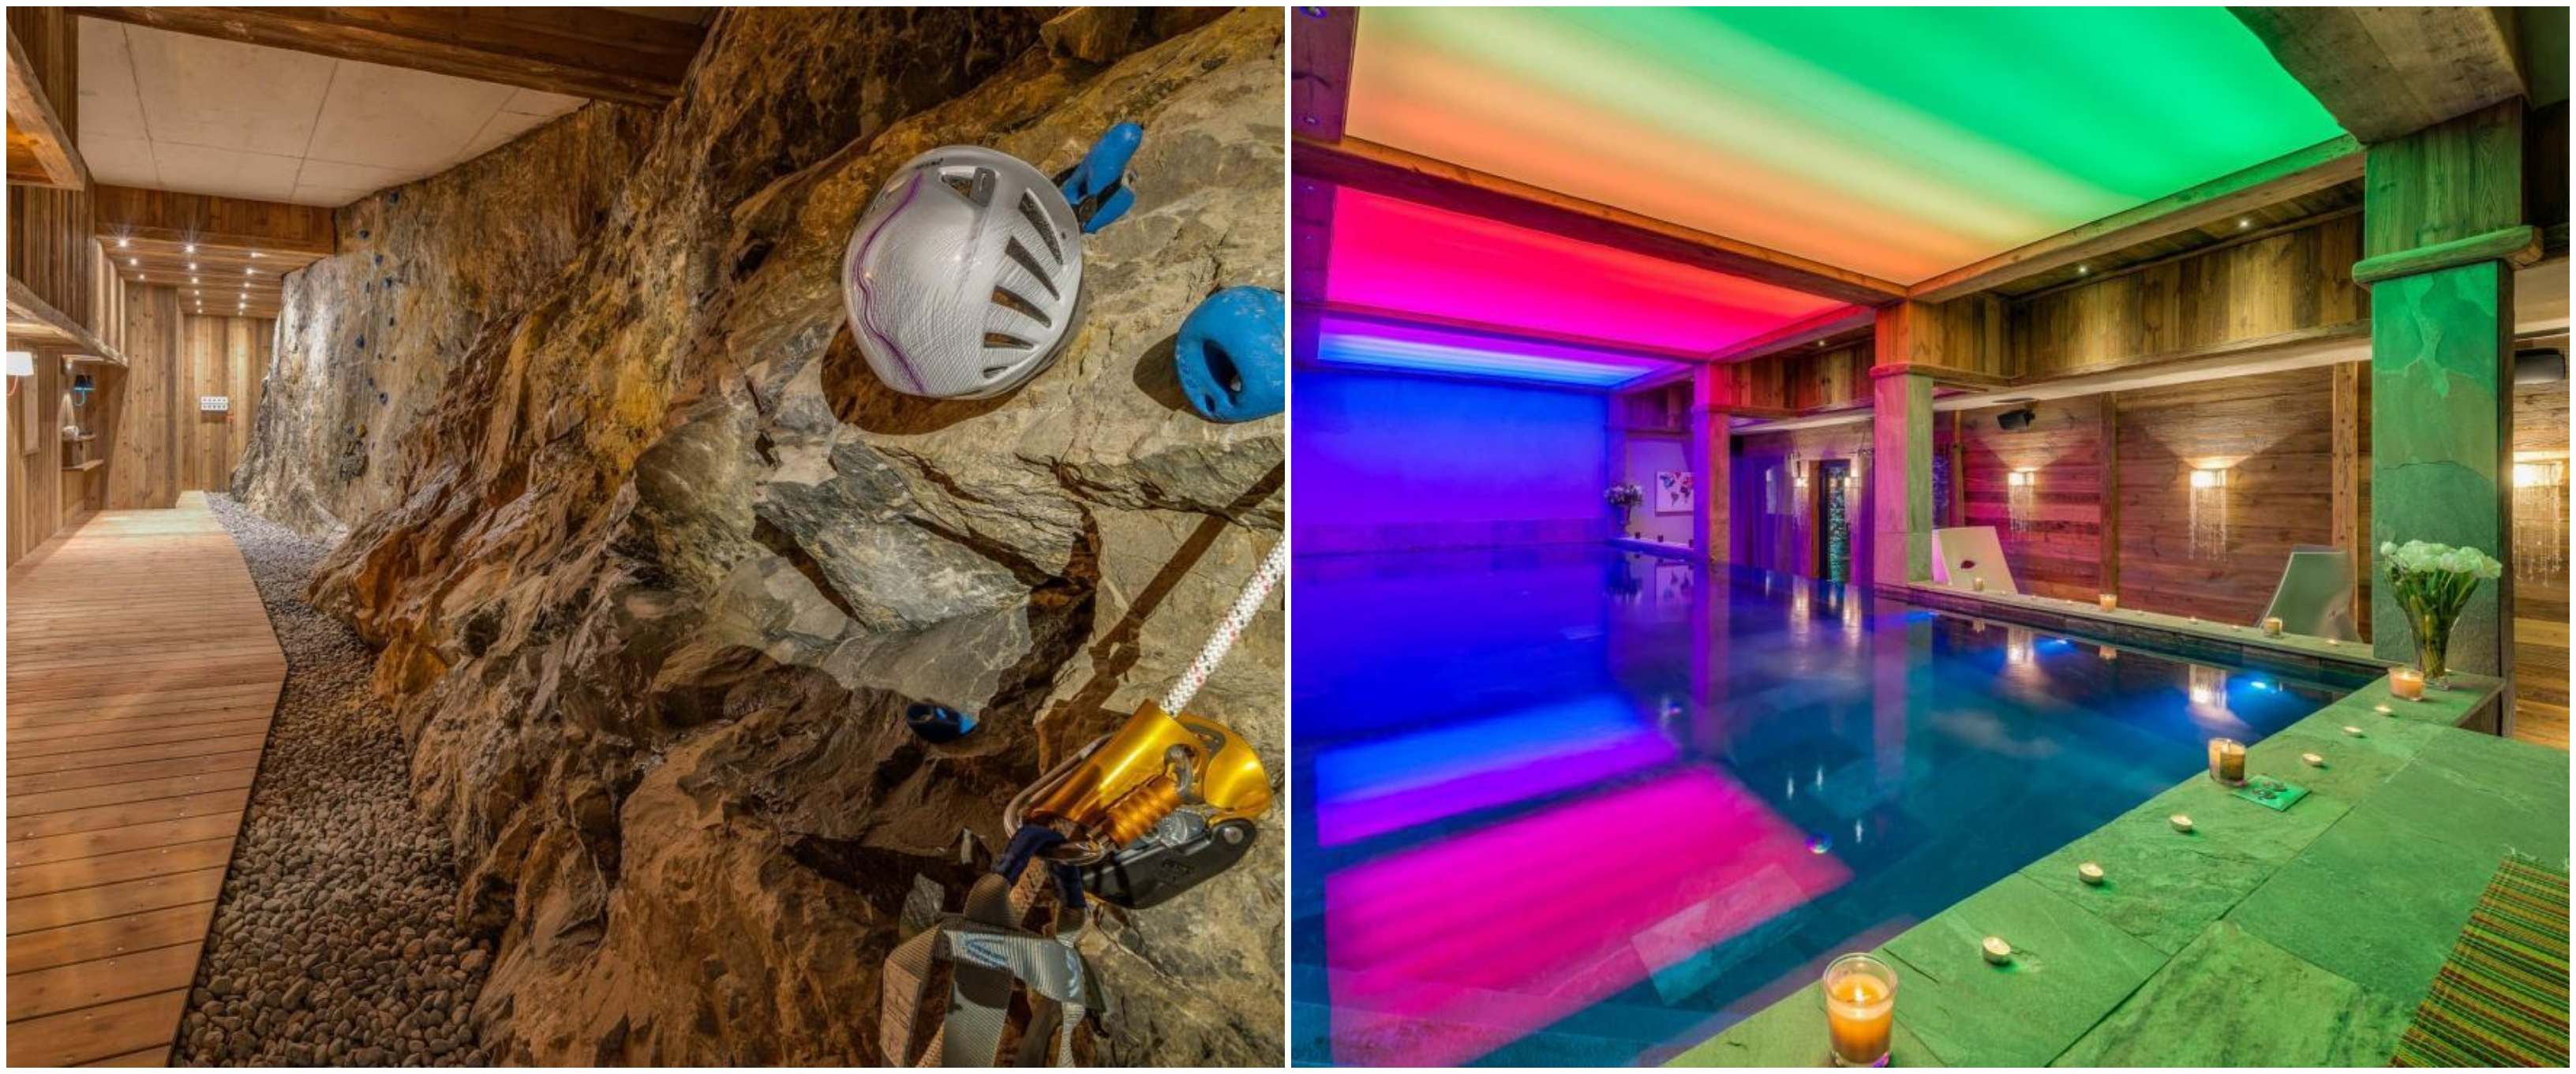 private pool, luxury chalet with pool, rock climbing wall, luxury chalet val d'isere